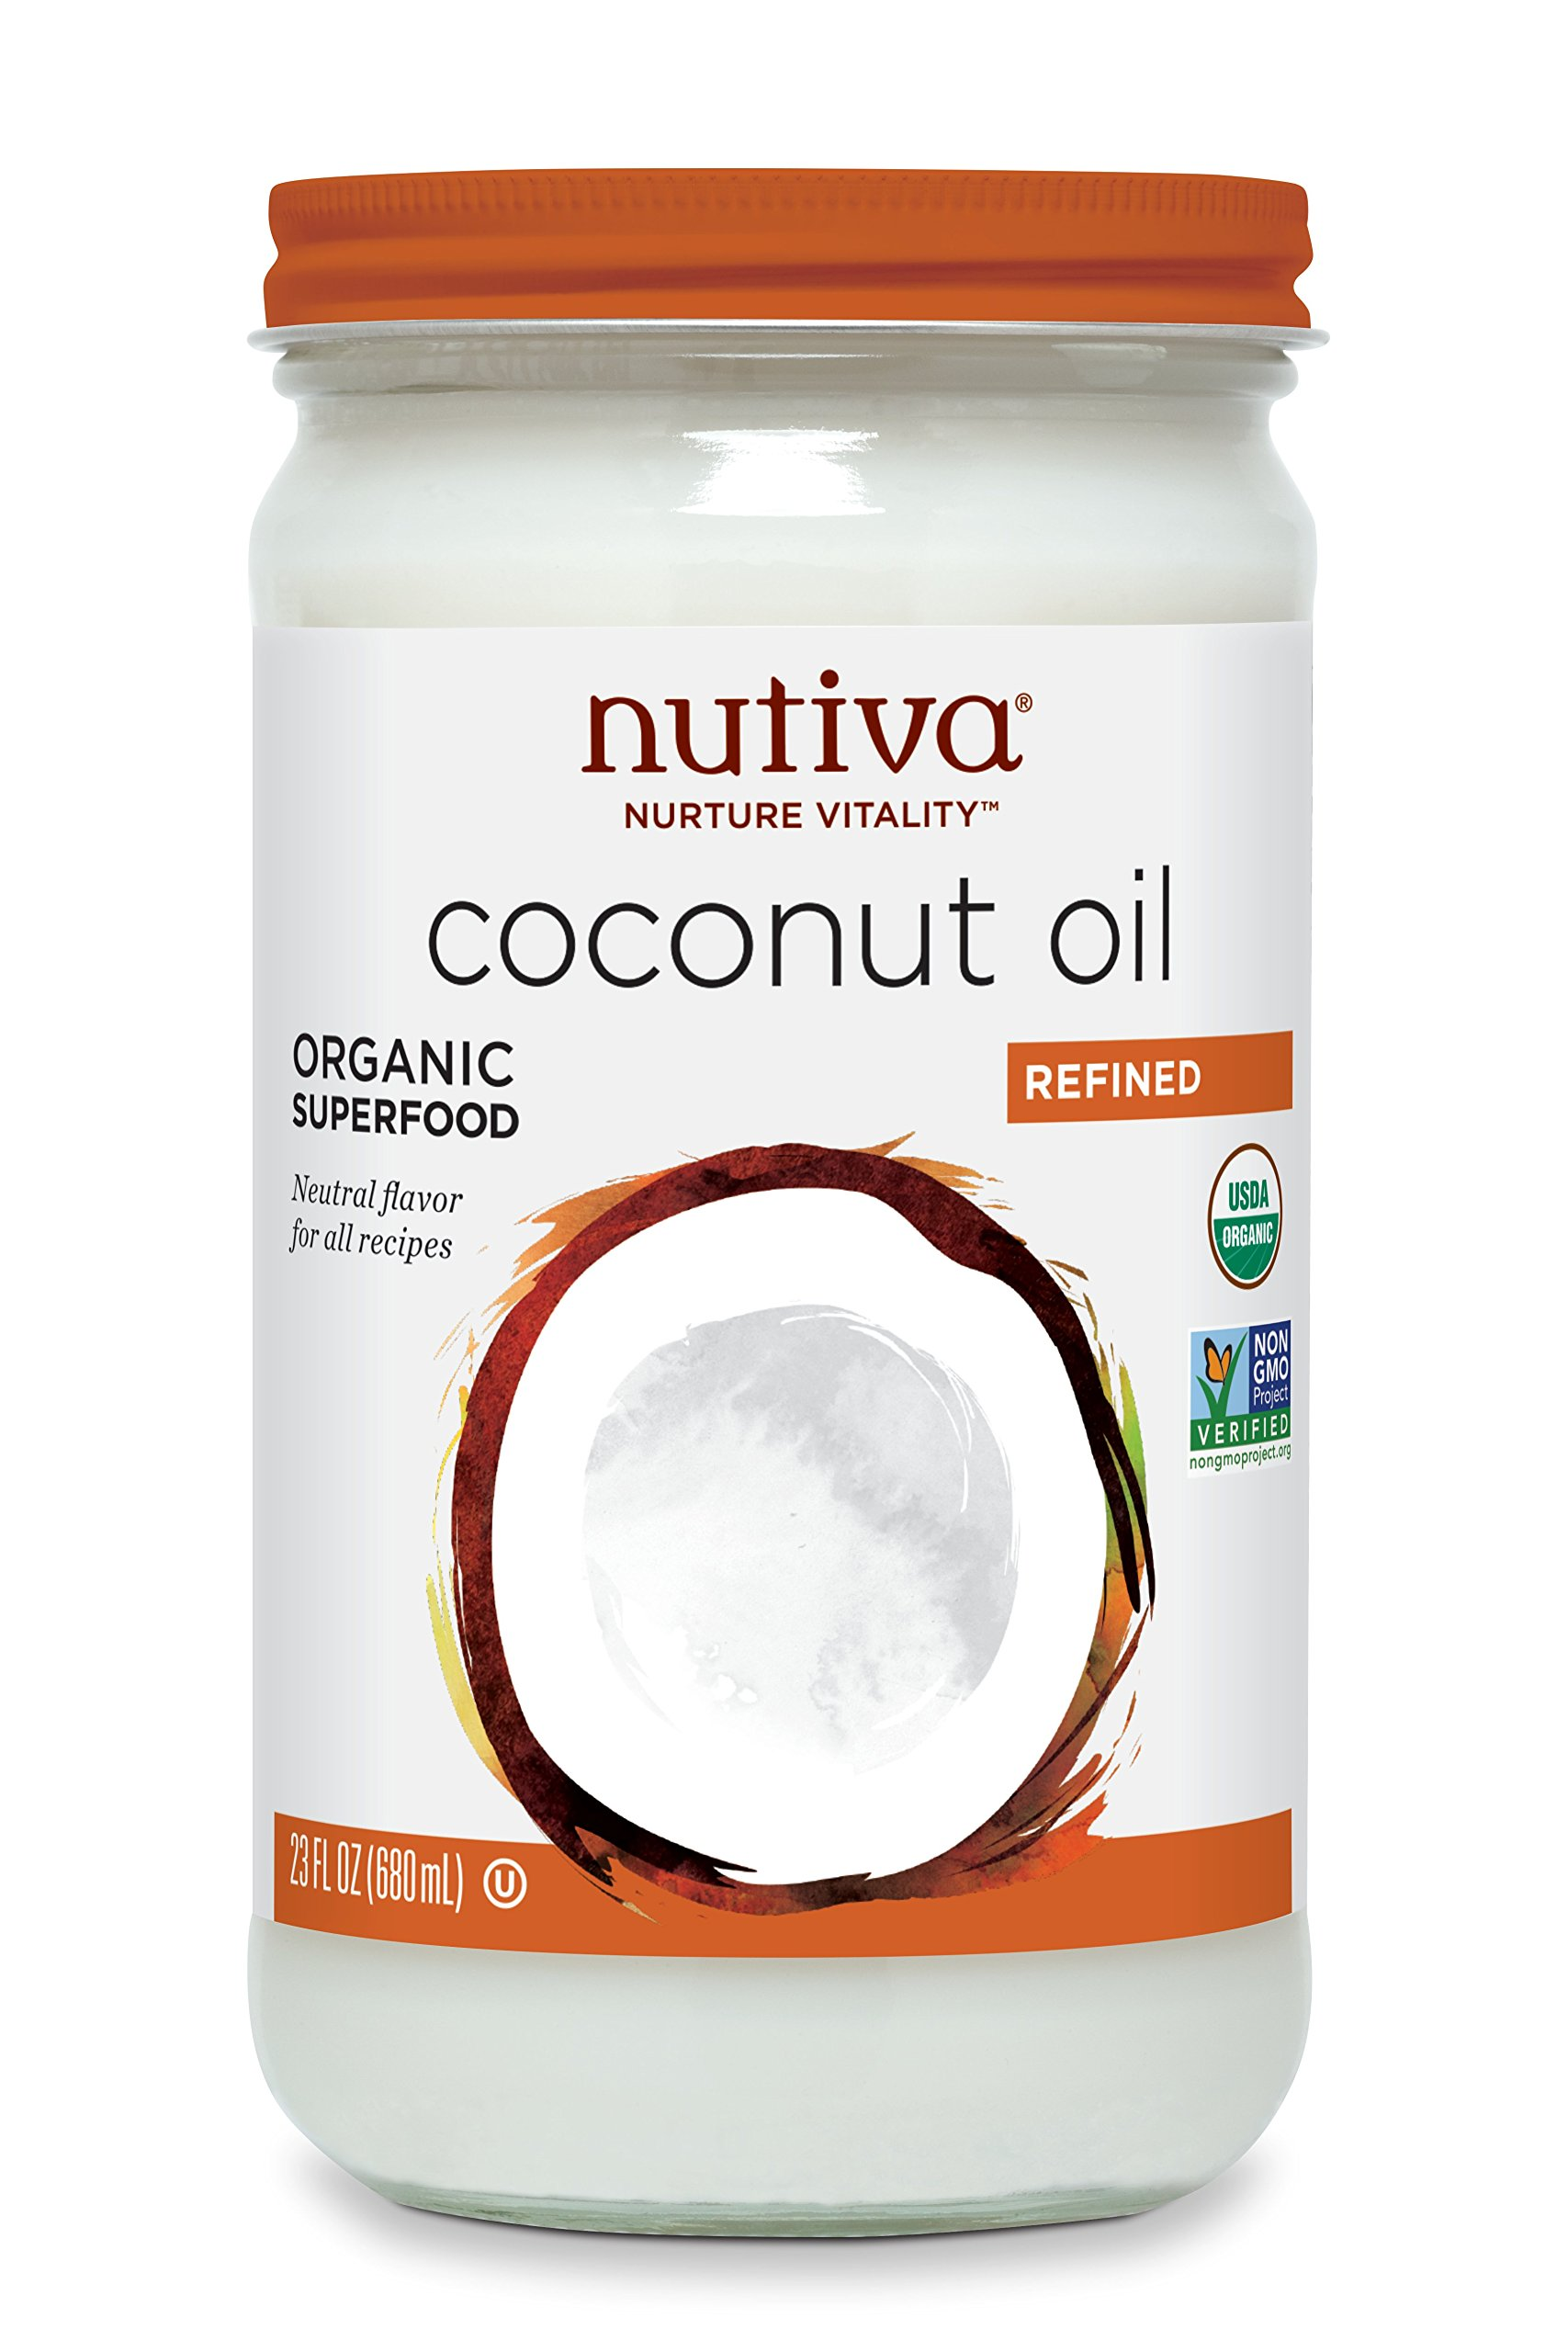 Nutiva Refined Coconut Oil, 23 Ounce by Nutiva